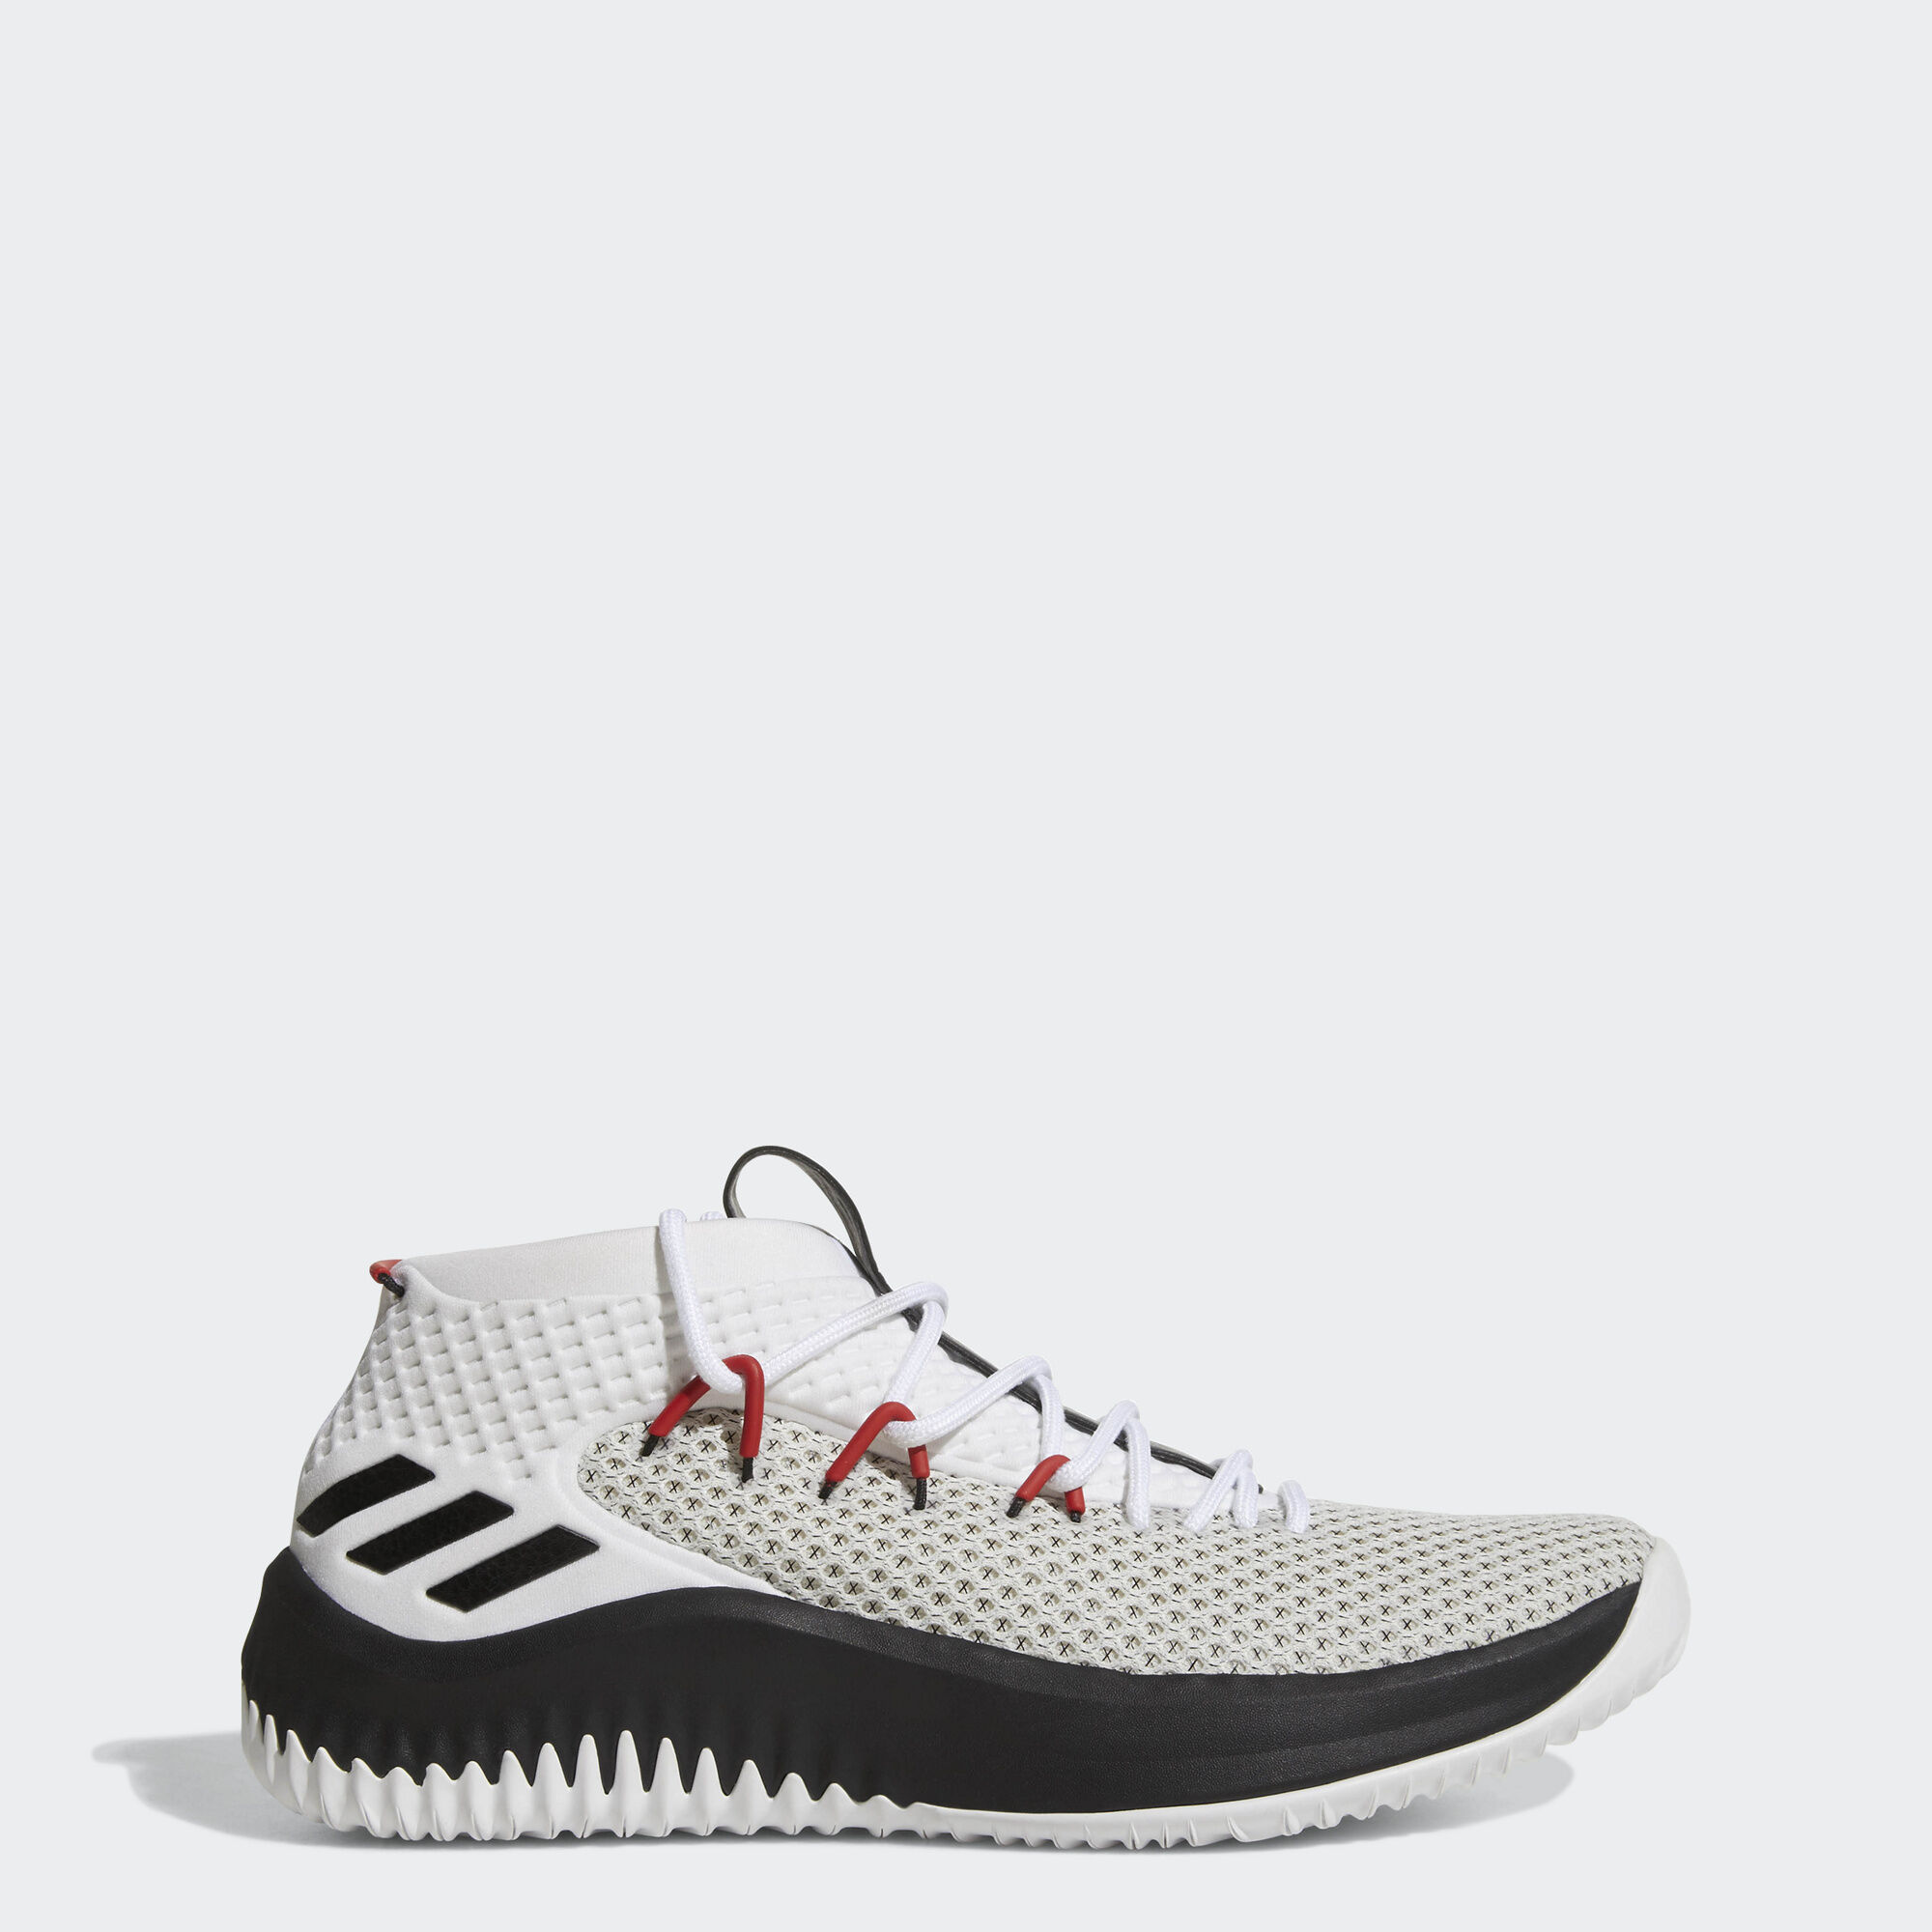 adidas basketball shoes white and black